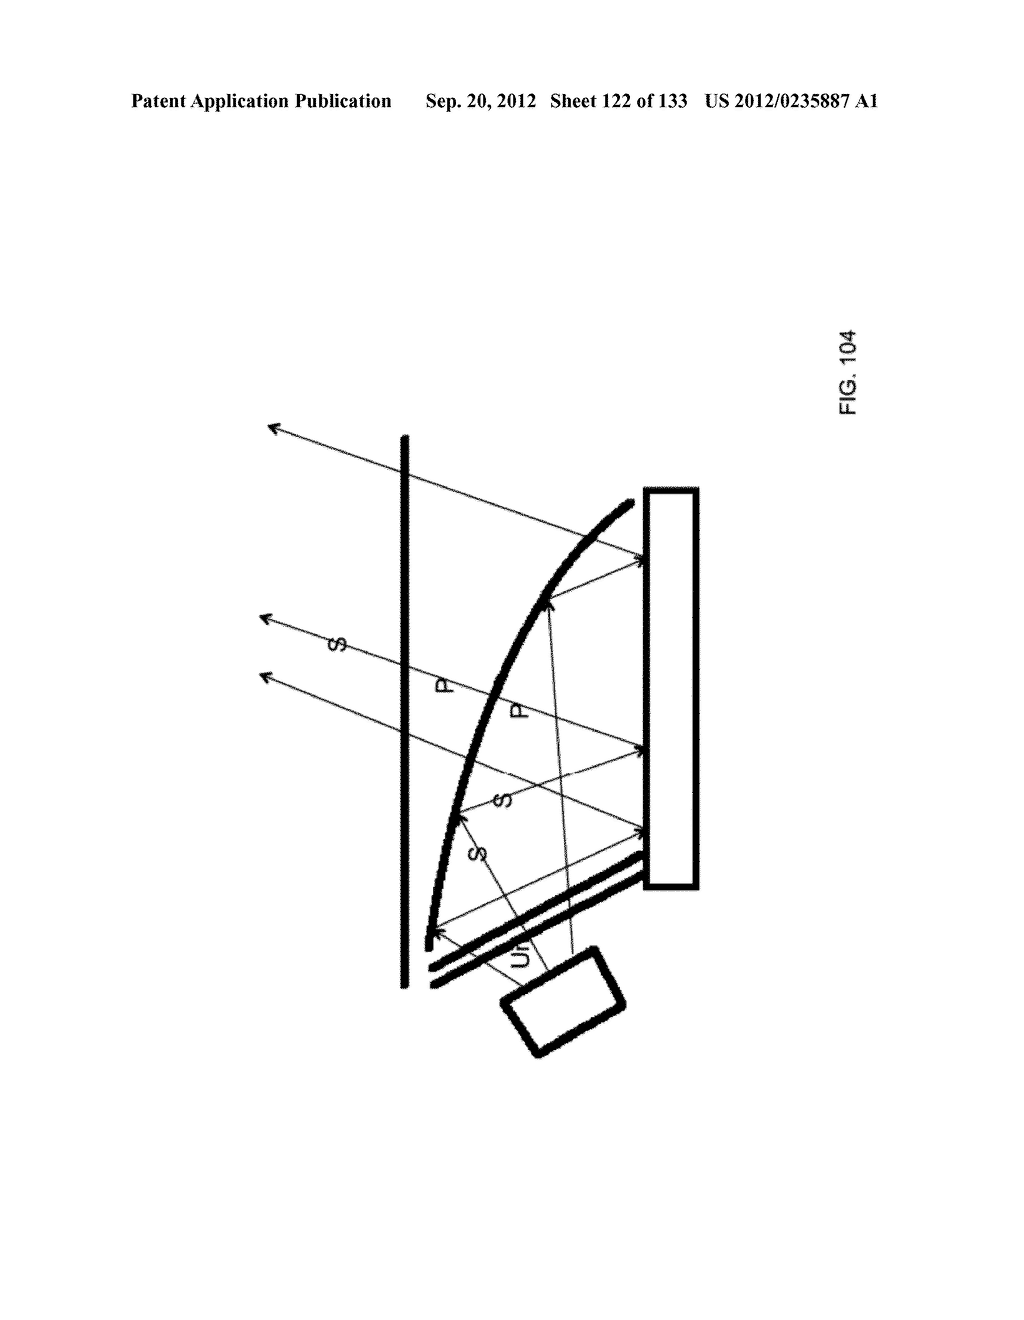 SEE-THROUGH NEAR-EYE DISPLAY GLASSES INCLUDING A PARTIALLY REFLECTIVE,     PARTIALLY TRANSMITTING OPTICAL ELEMENT AND AN OPTICALLY FLAT FILM - diagram, schematic, and image 123